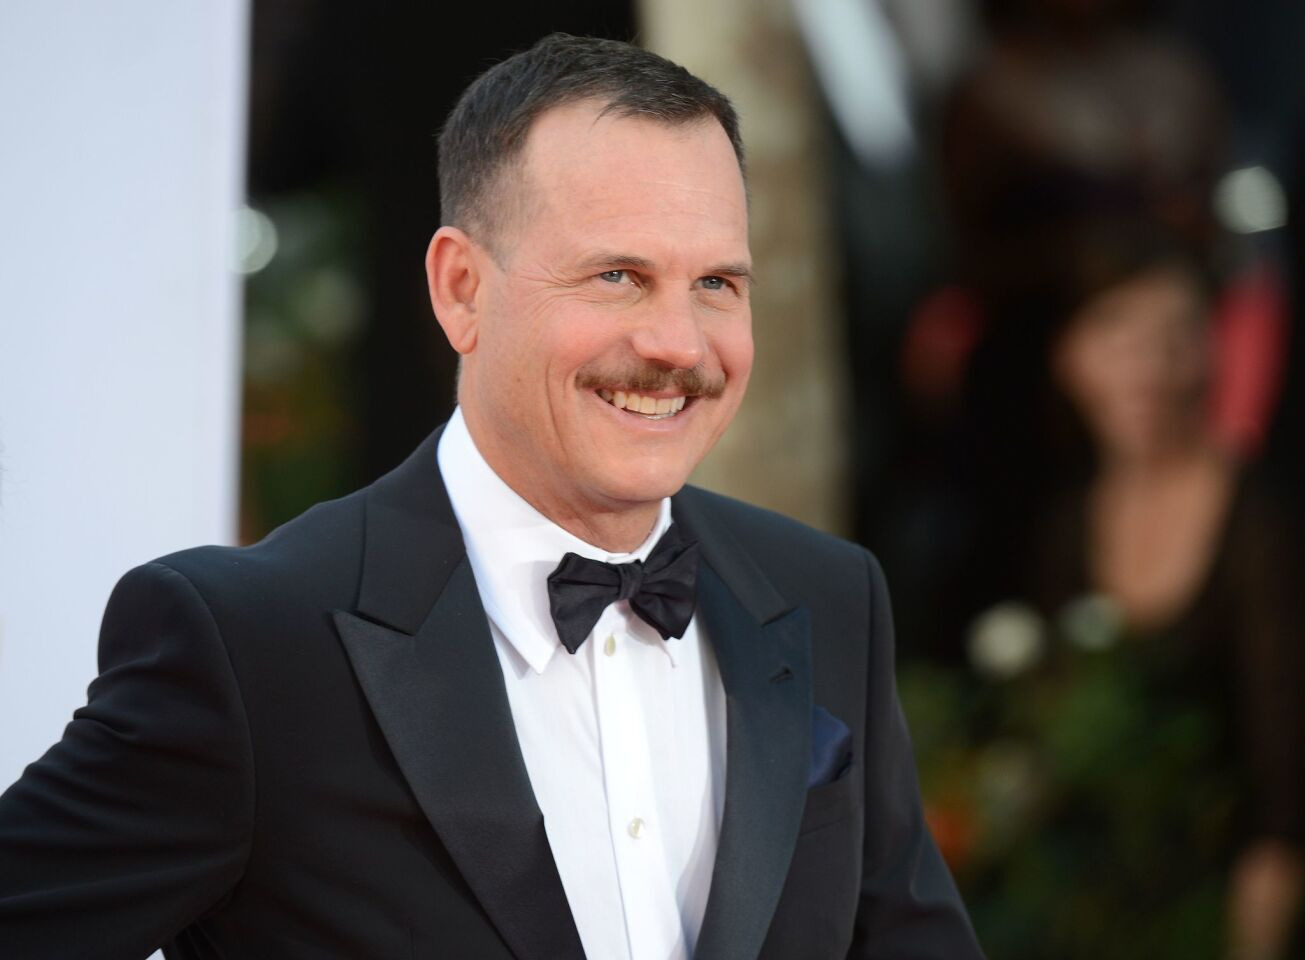 Actor Bill Paxton arrives for the Emmy Awards in 2012 in Los Angeles. Paxton has died at age 61.